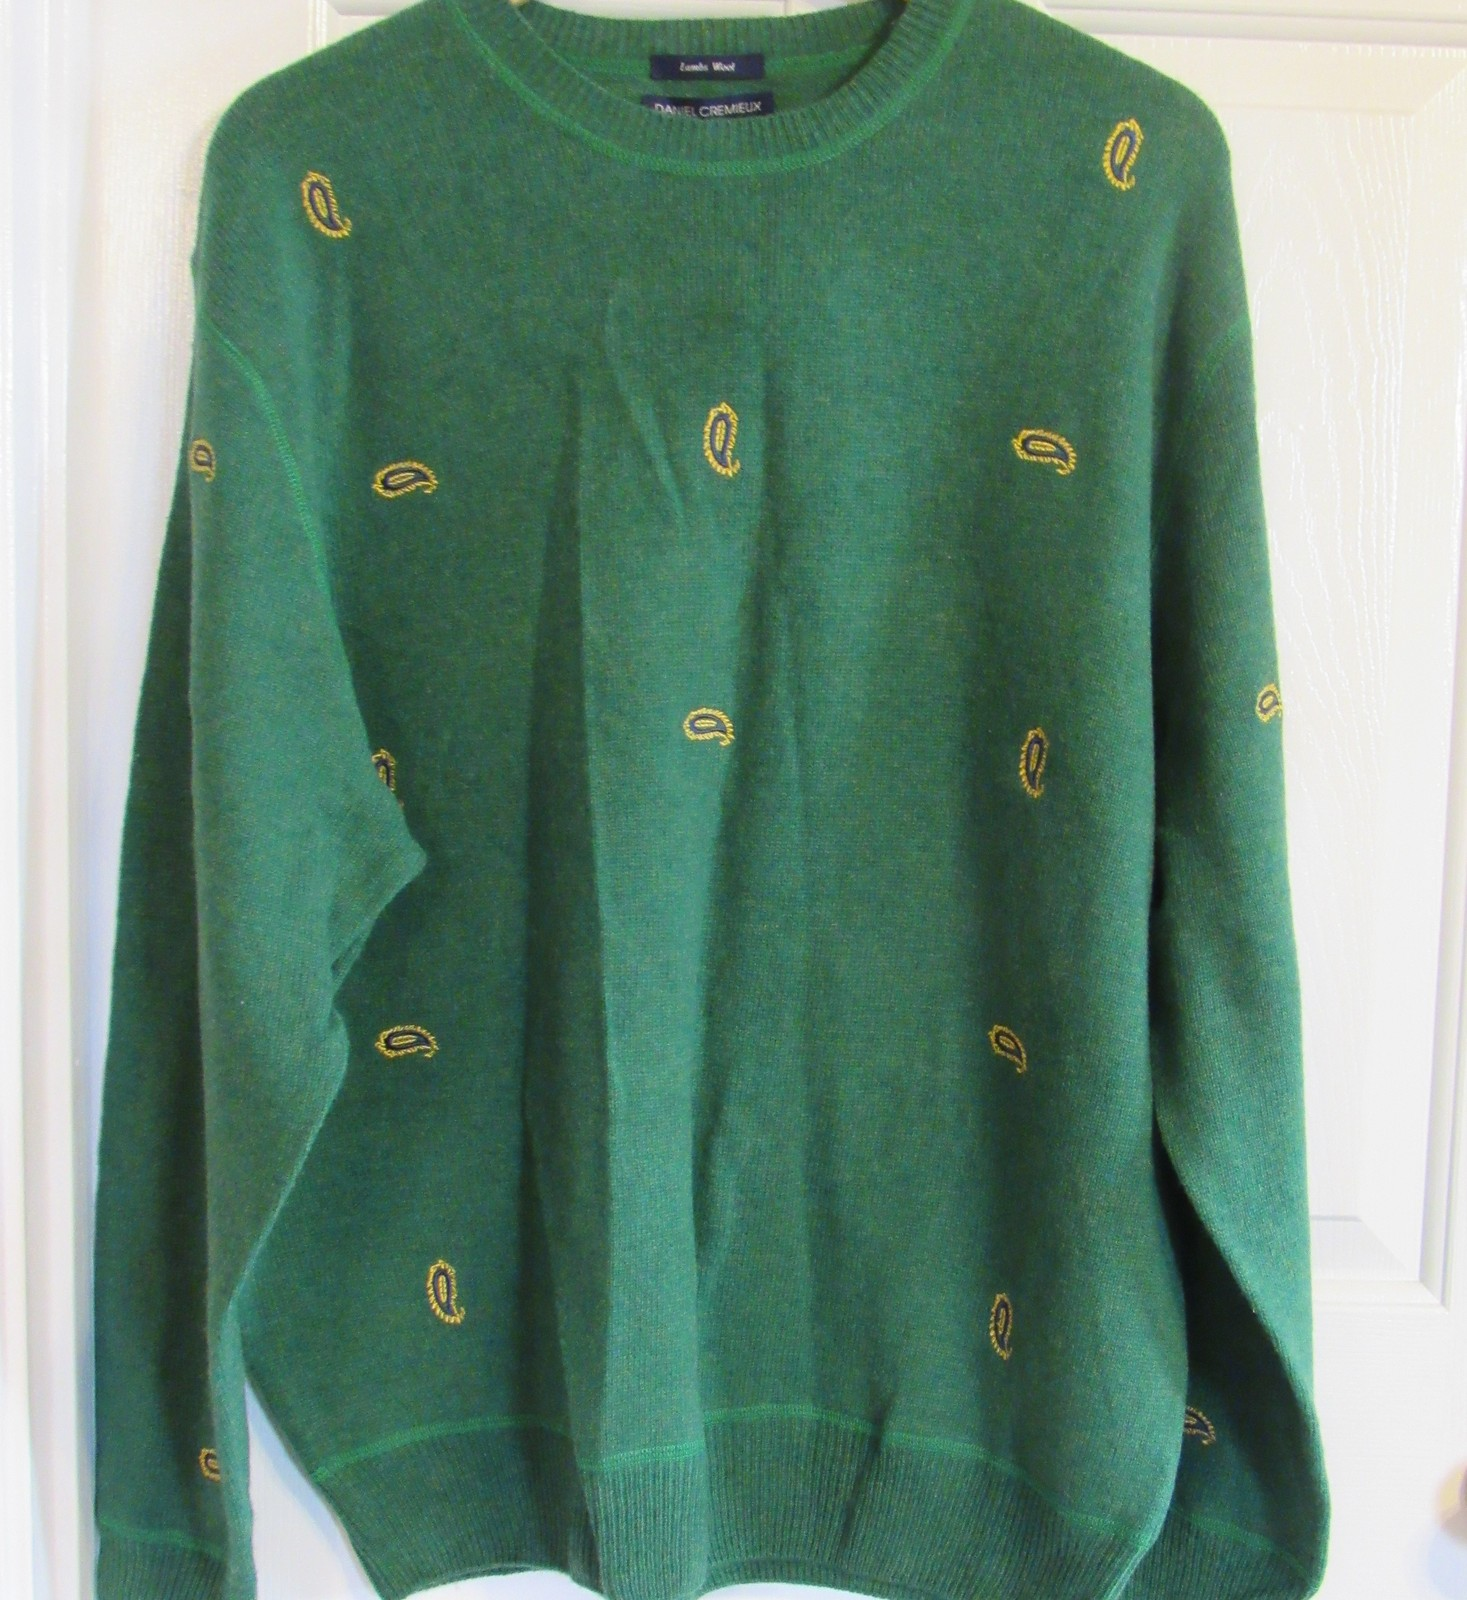 DANIEL CREMIEUX COLLECTION EMBROIDERED MEN'S XL SWEATER 100%LAMBS WOOL GREEN NEW